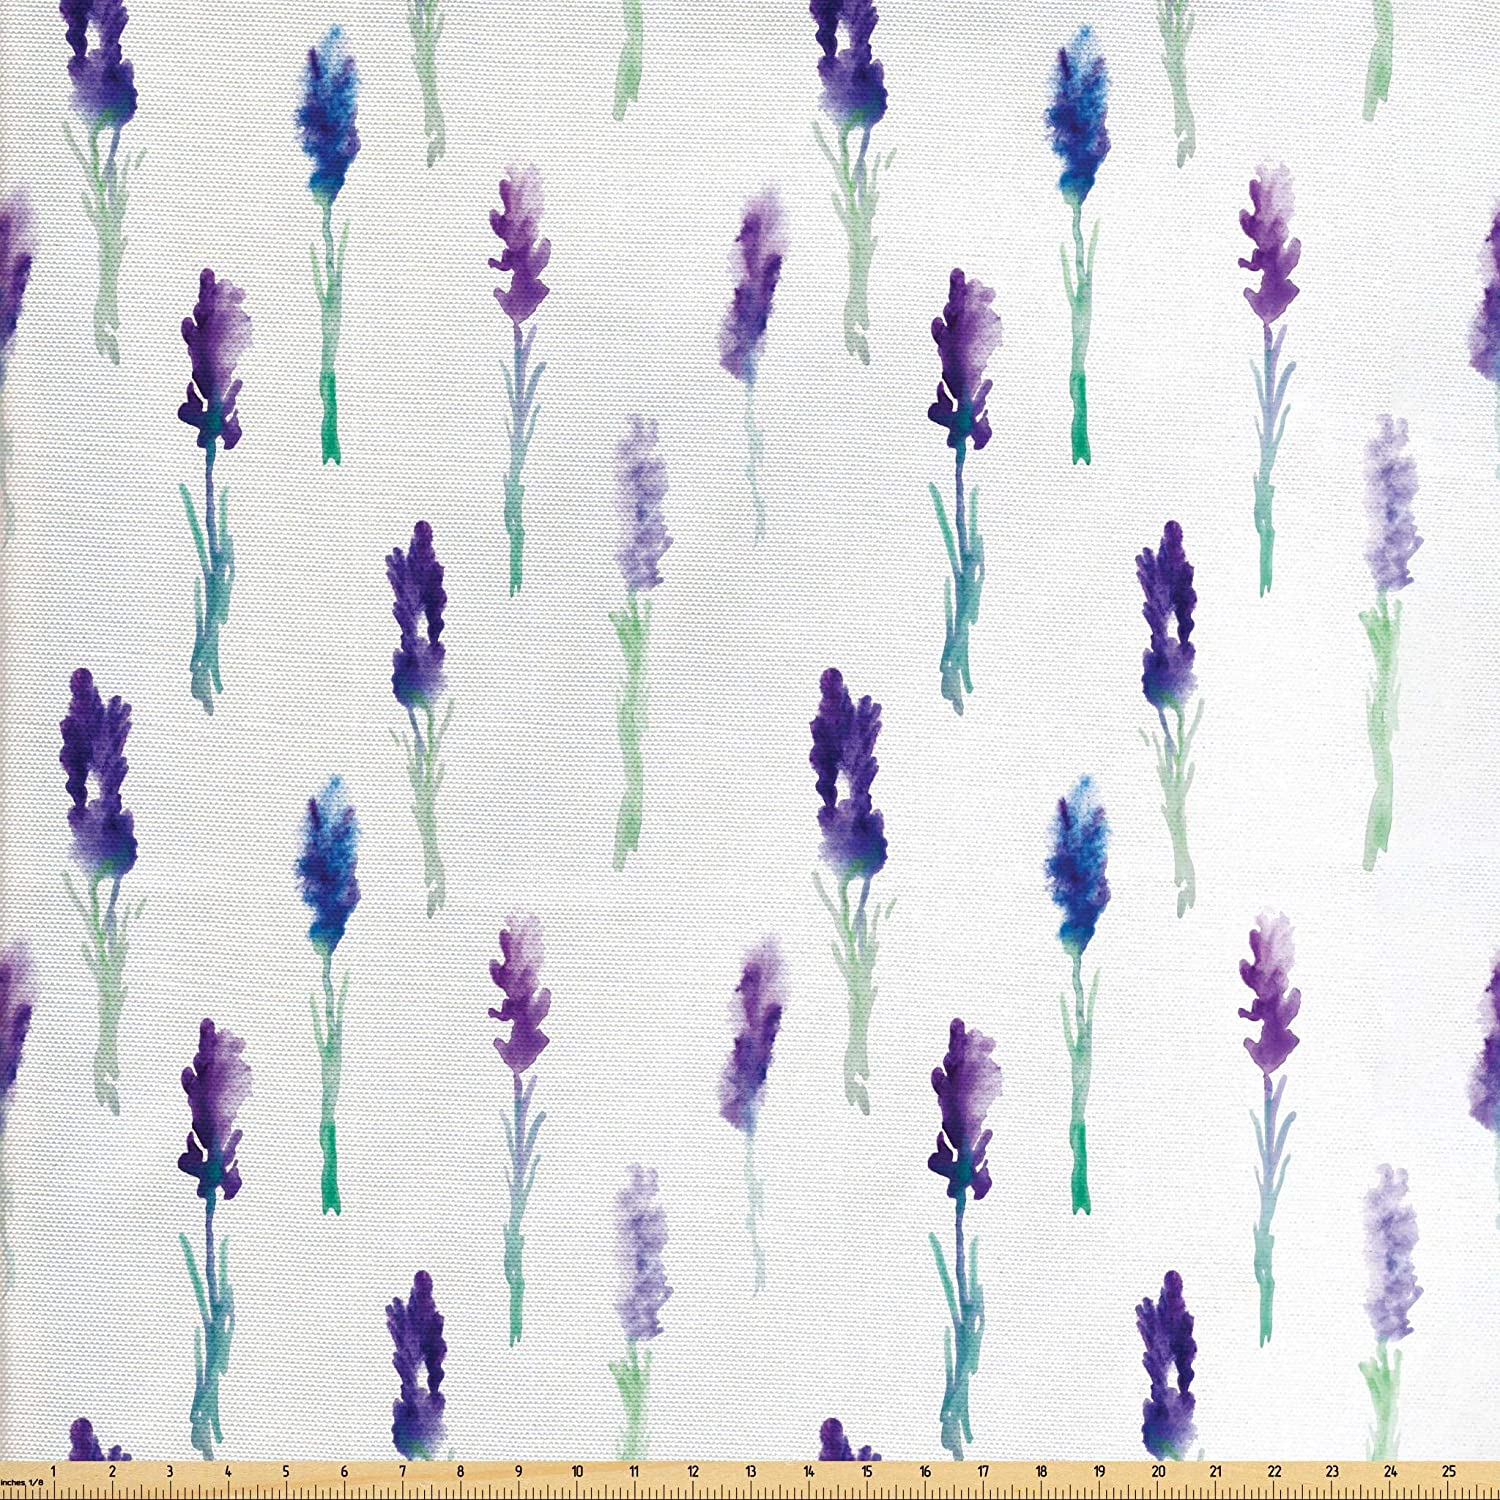 Lunarable Lavender Fabric by The Yard, Abstract Watercolor Art Style Flowers on Stems Springtime Nature, Decorative Fabric for Upholstery and Home Accents, 3 Yards, Turquoise Navy